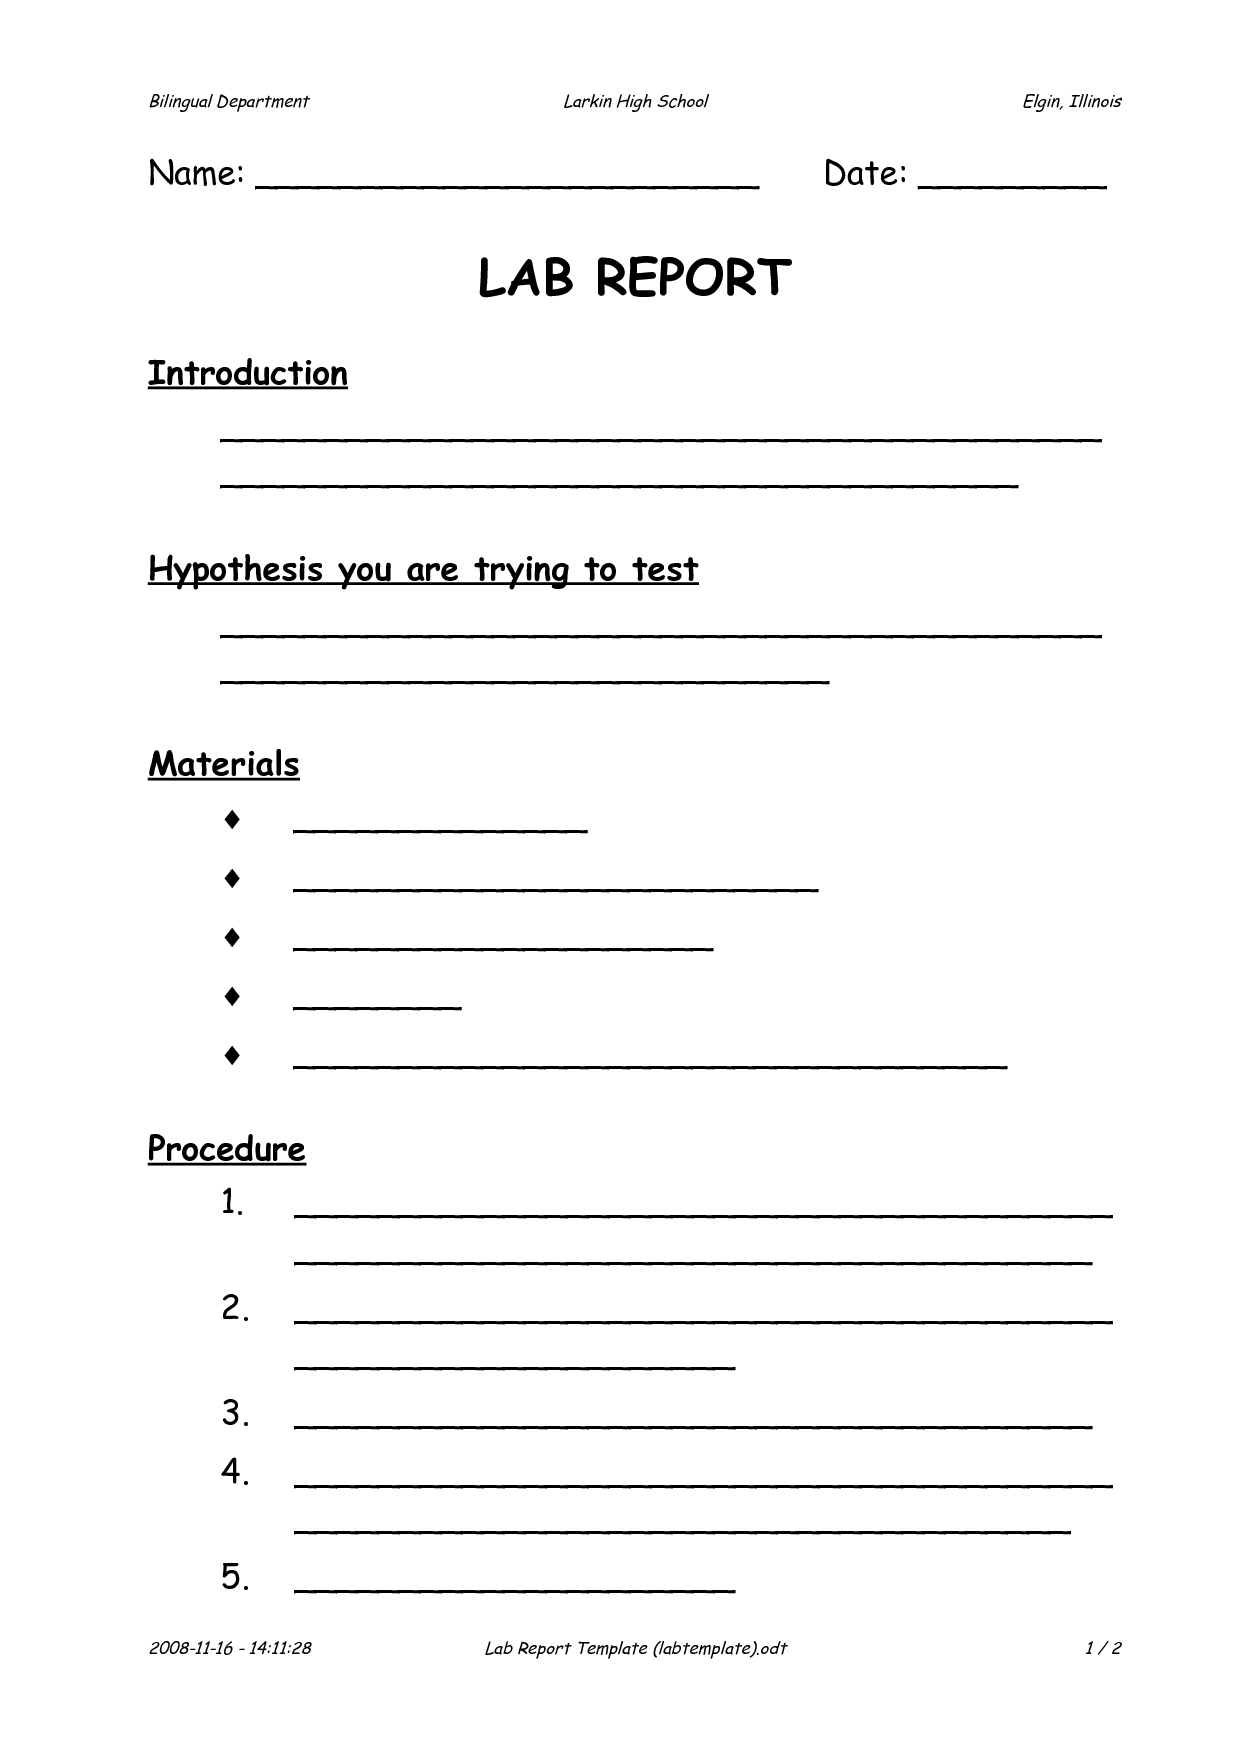 lab report template pdf by nvh41087 7glt4bds